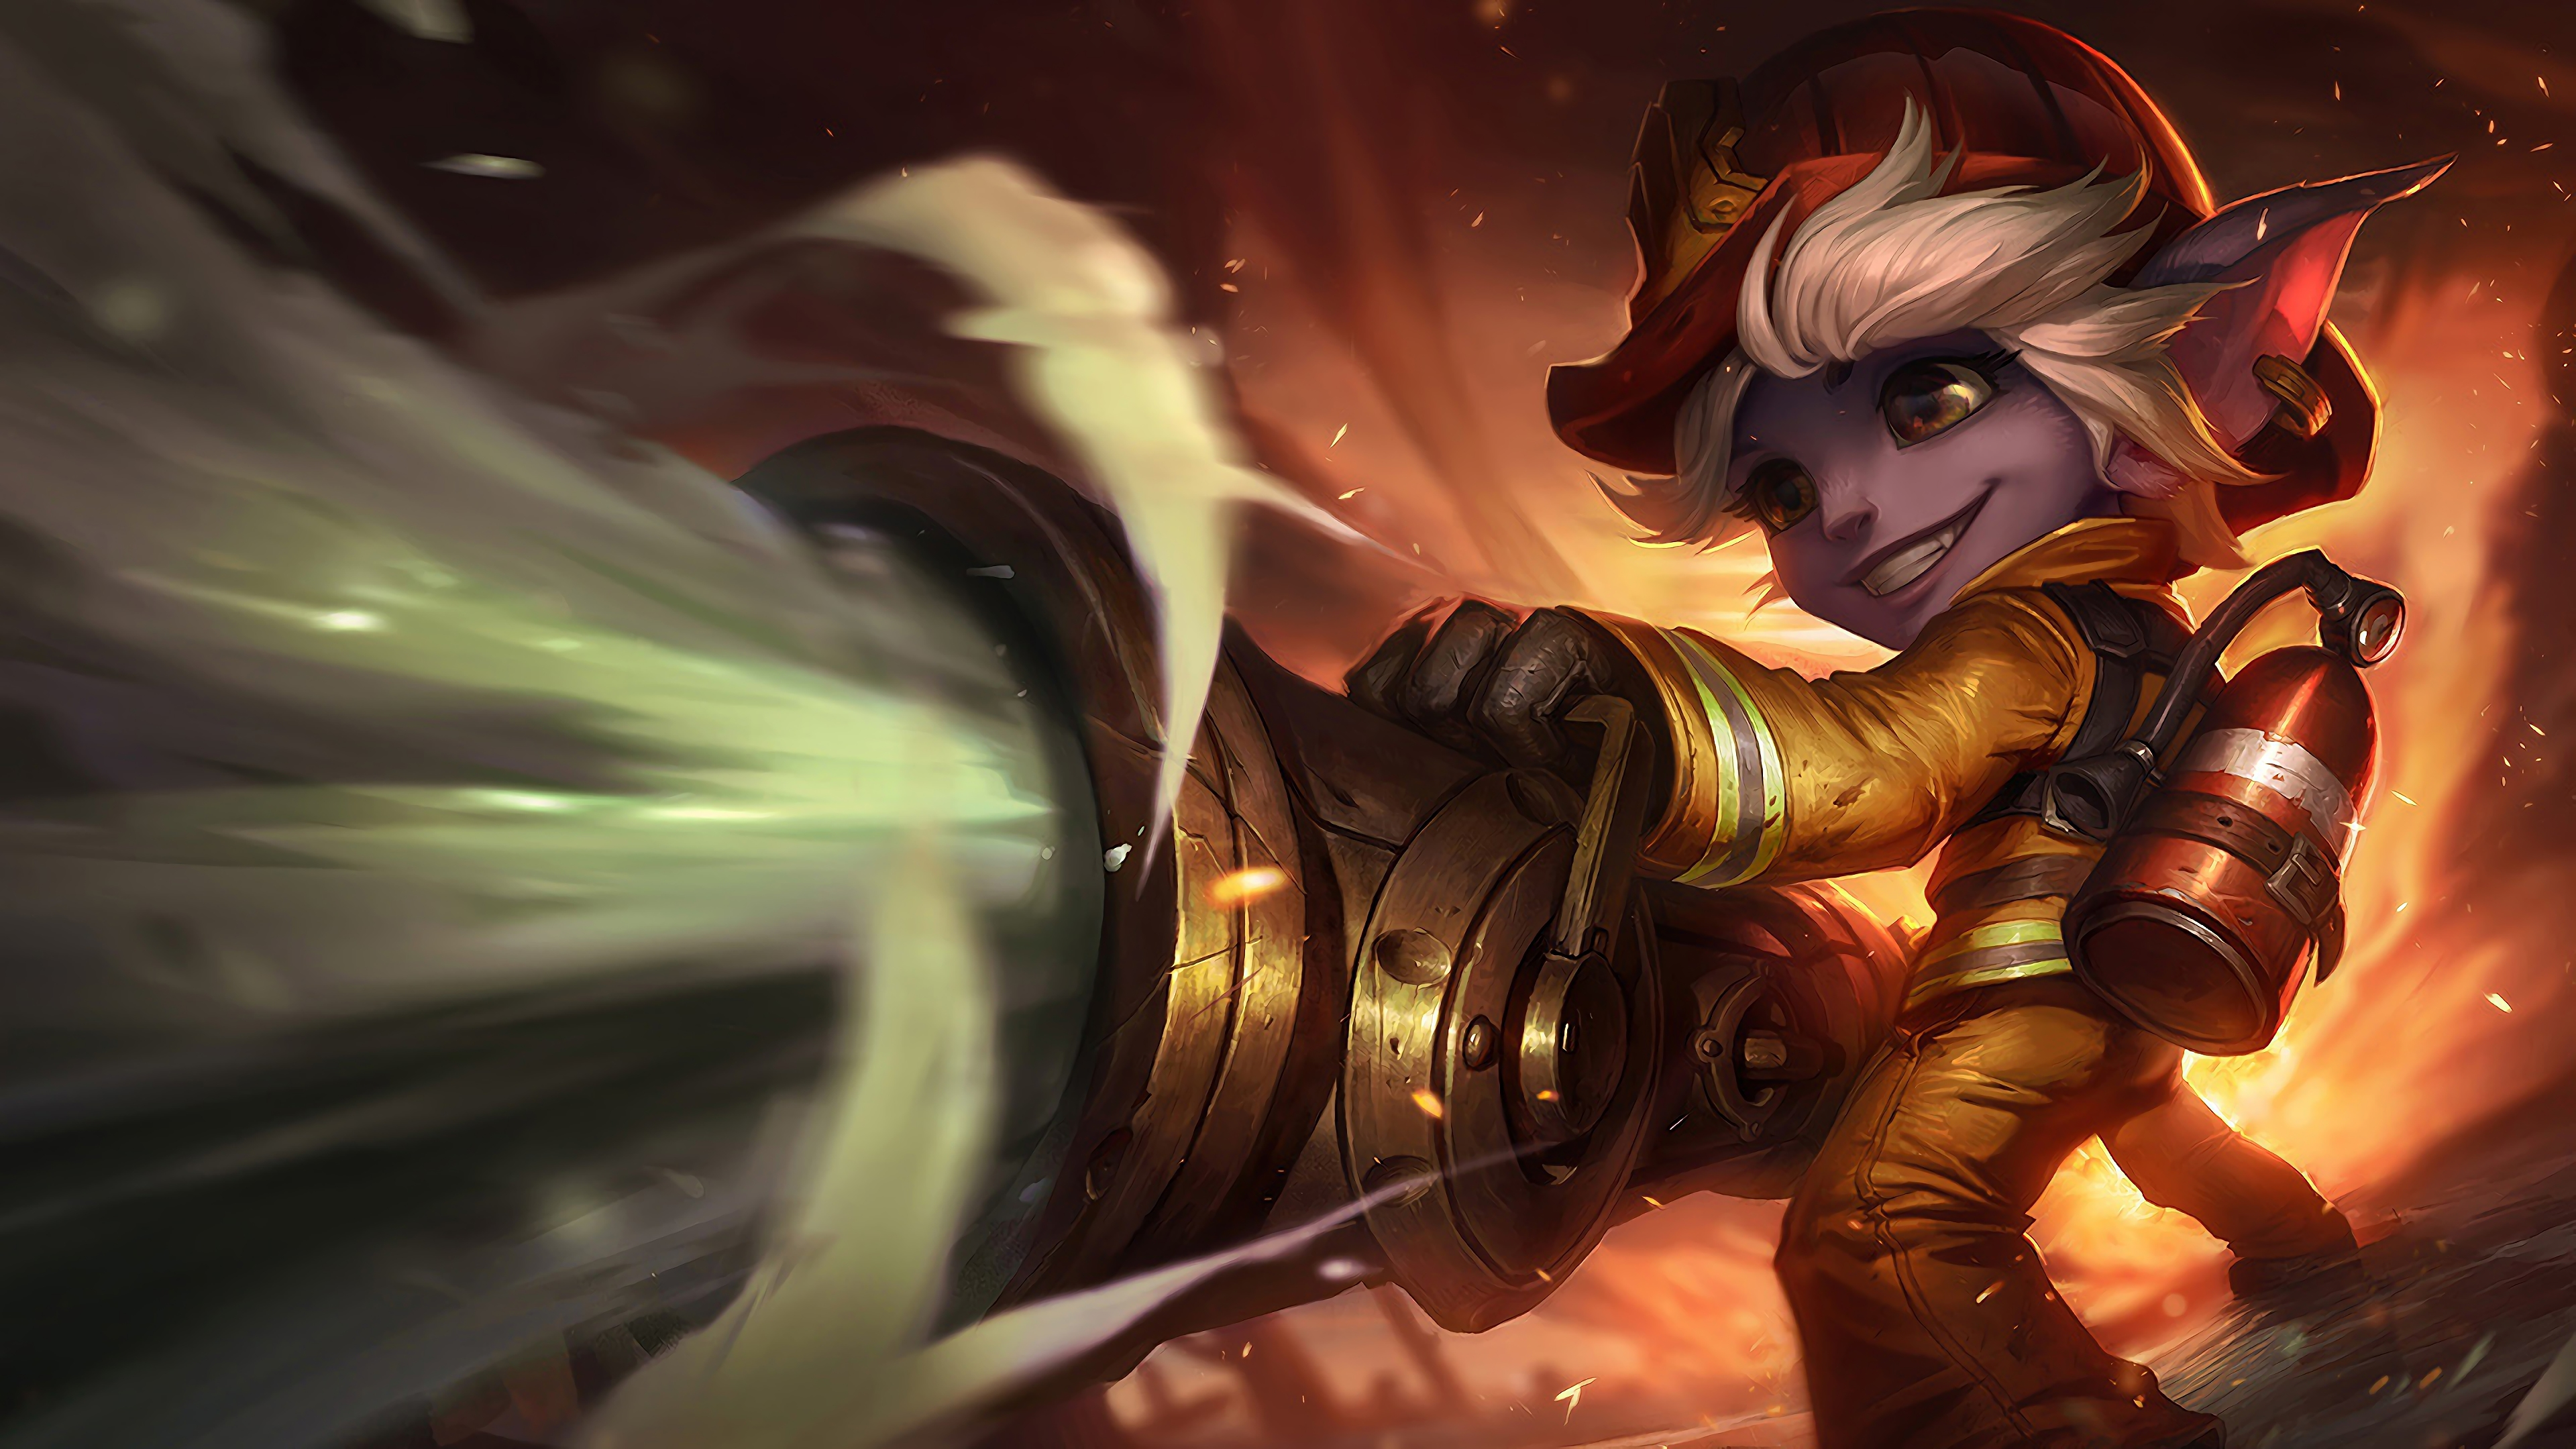 firefighter tristana lol splash art 1574097622 - Firefighter Tristana LoL Splash Art - Tristana, league of legends